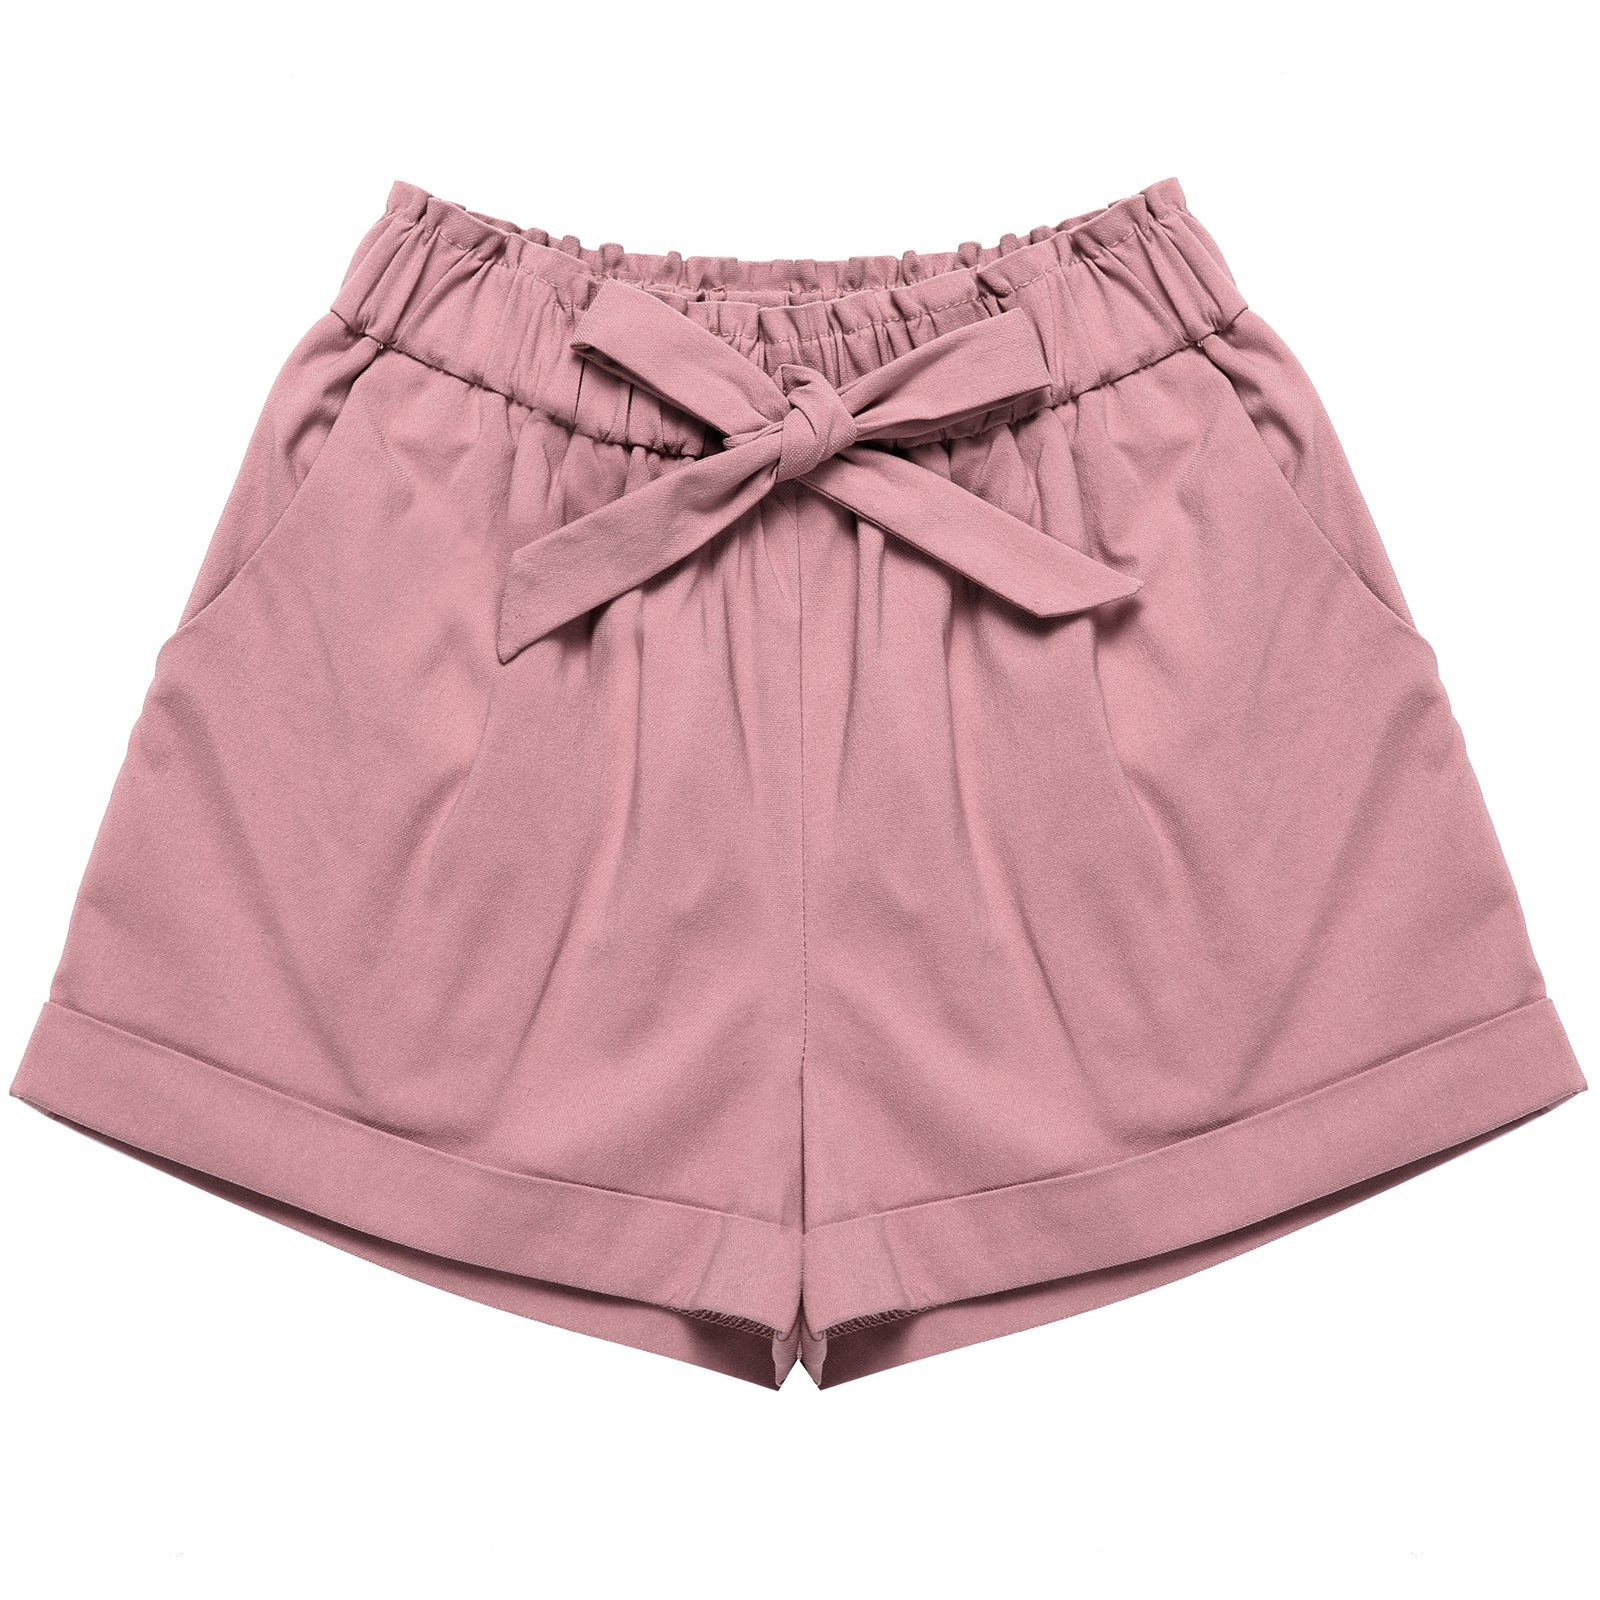 Bonny Billy Baby Girl's Short Fashion Solid Demin Pants 2-6x Pink